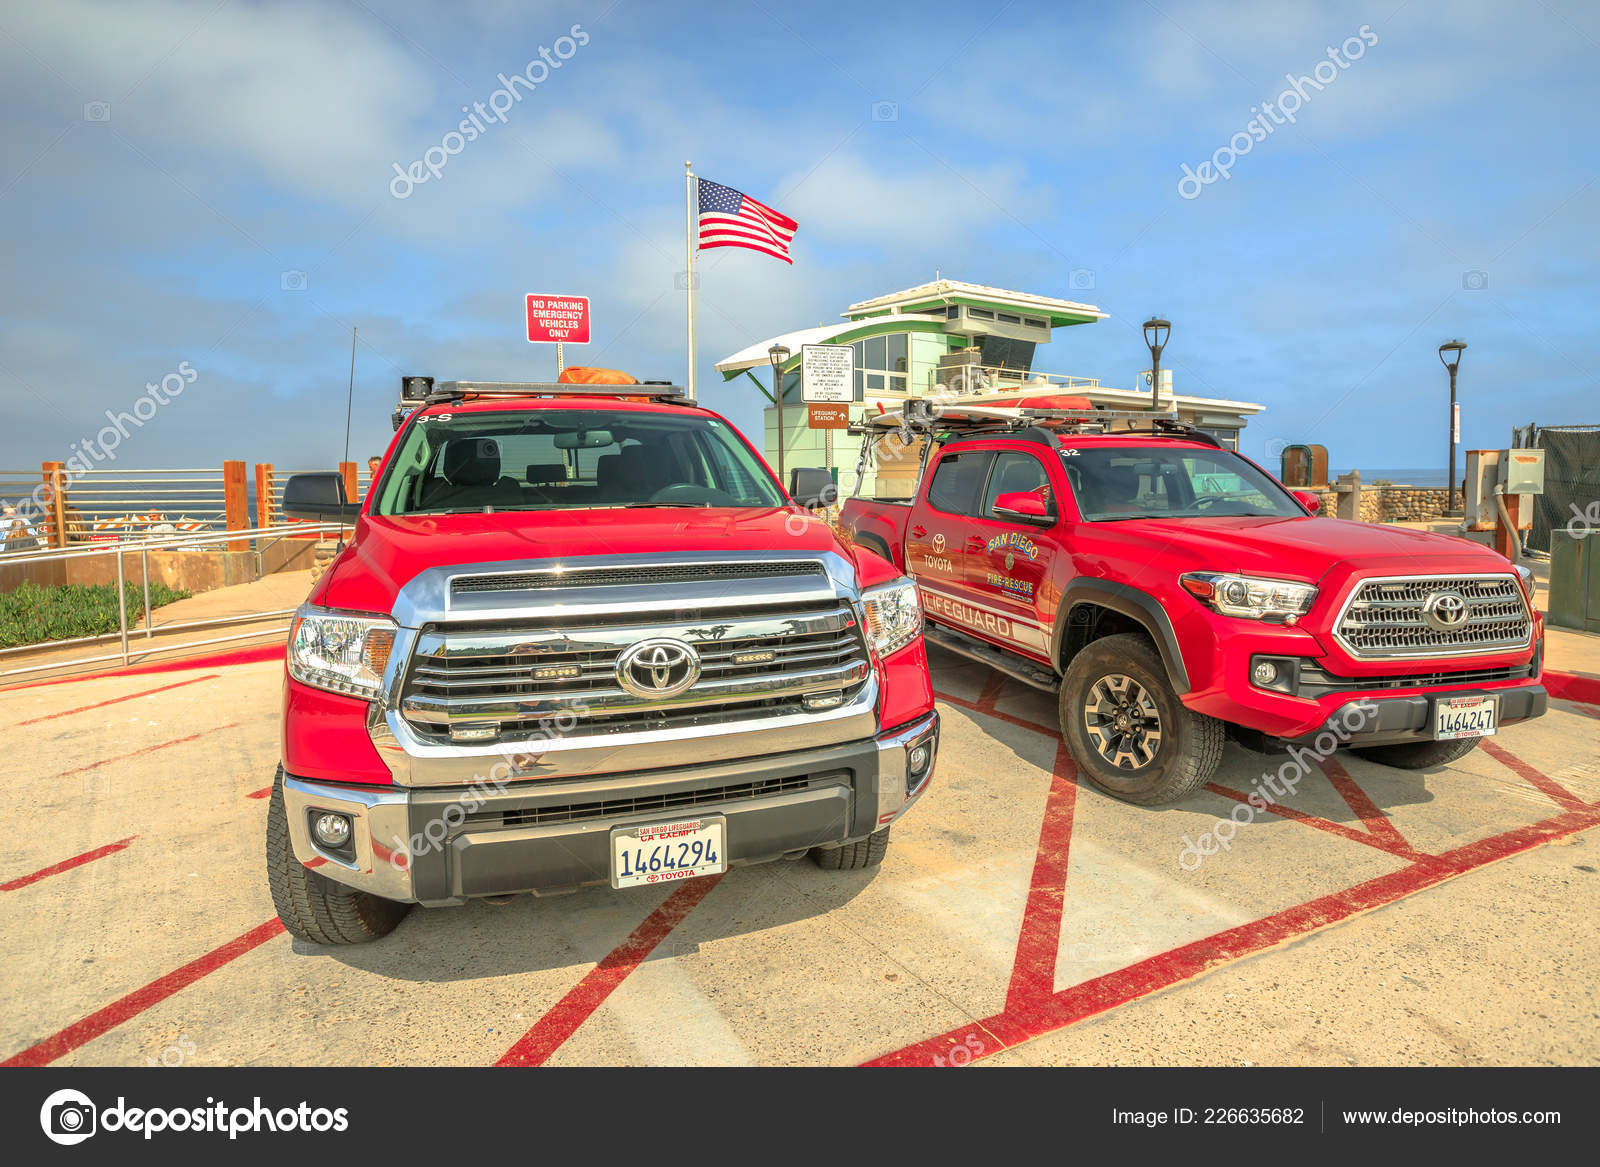 San Diego lifeguard fire-rescue – Stock Editorial Photo